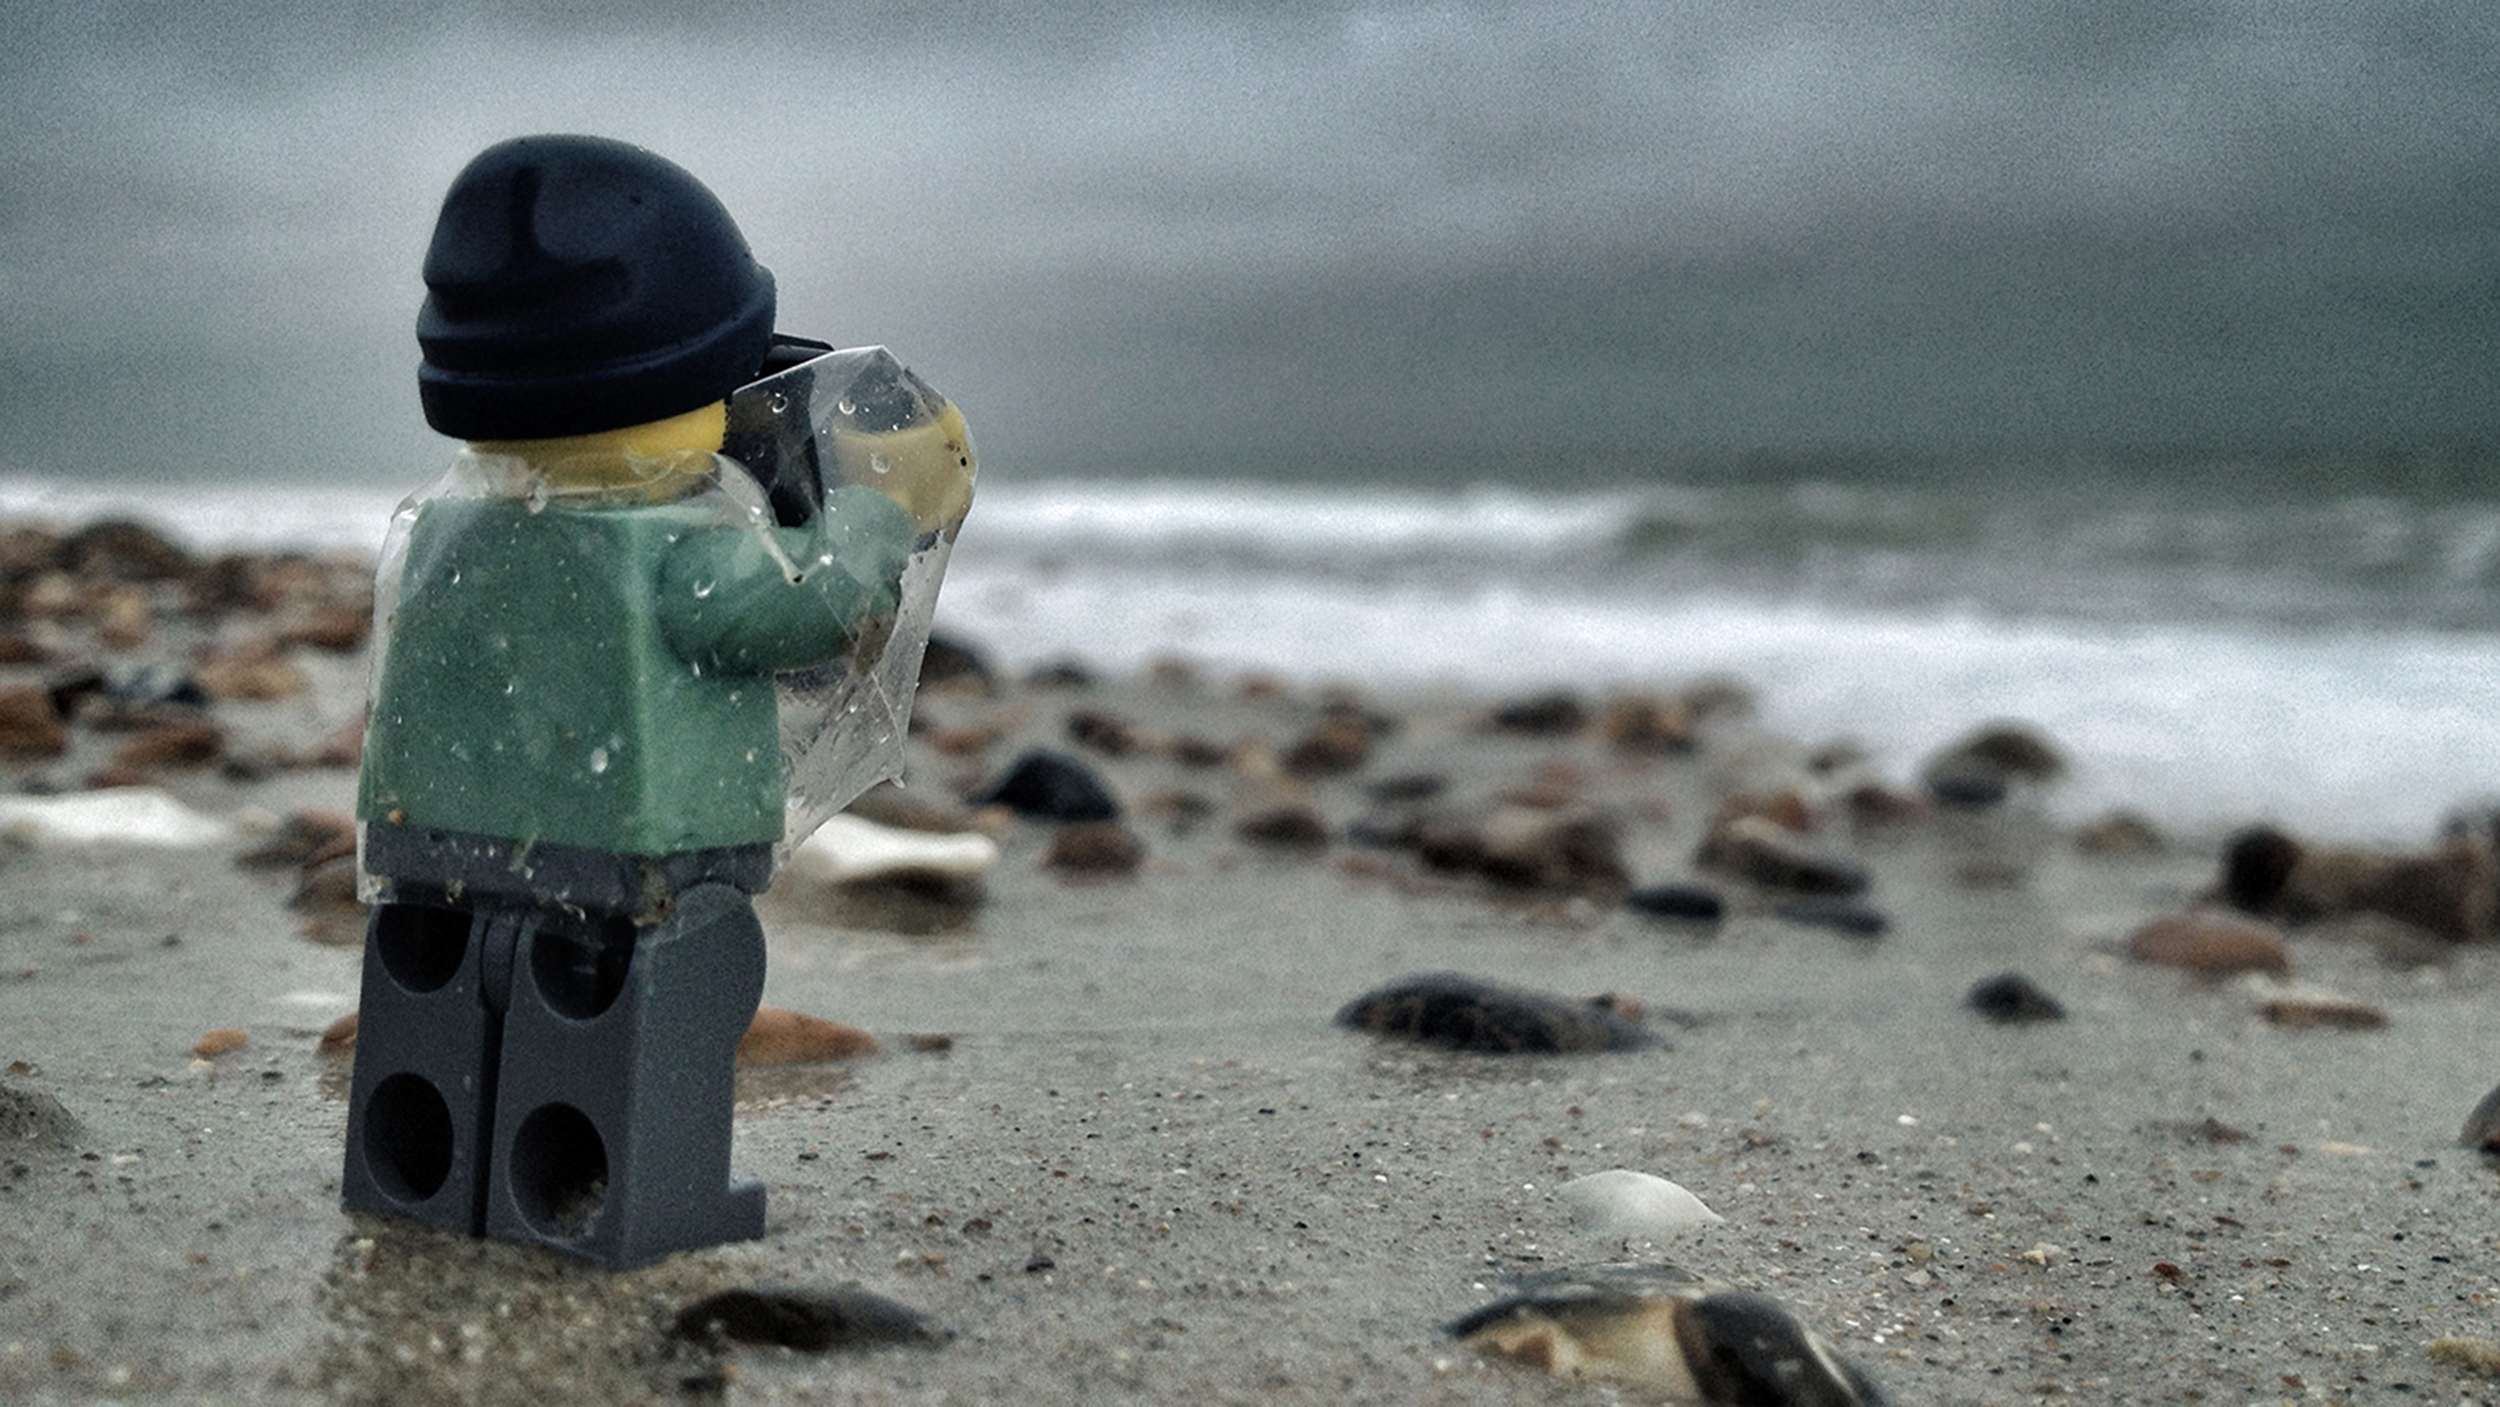 Little Lego Man Travels The UK With His Camera In Hand TODAYcom - Guy photographs his girlfriend as they travel the world